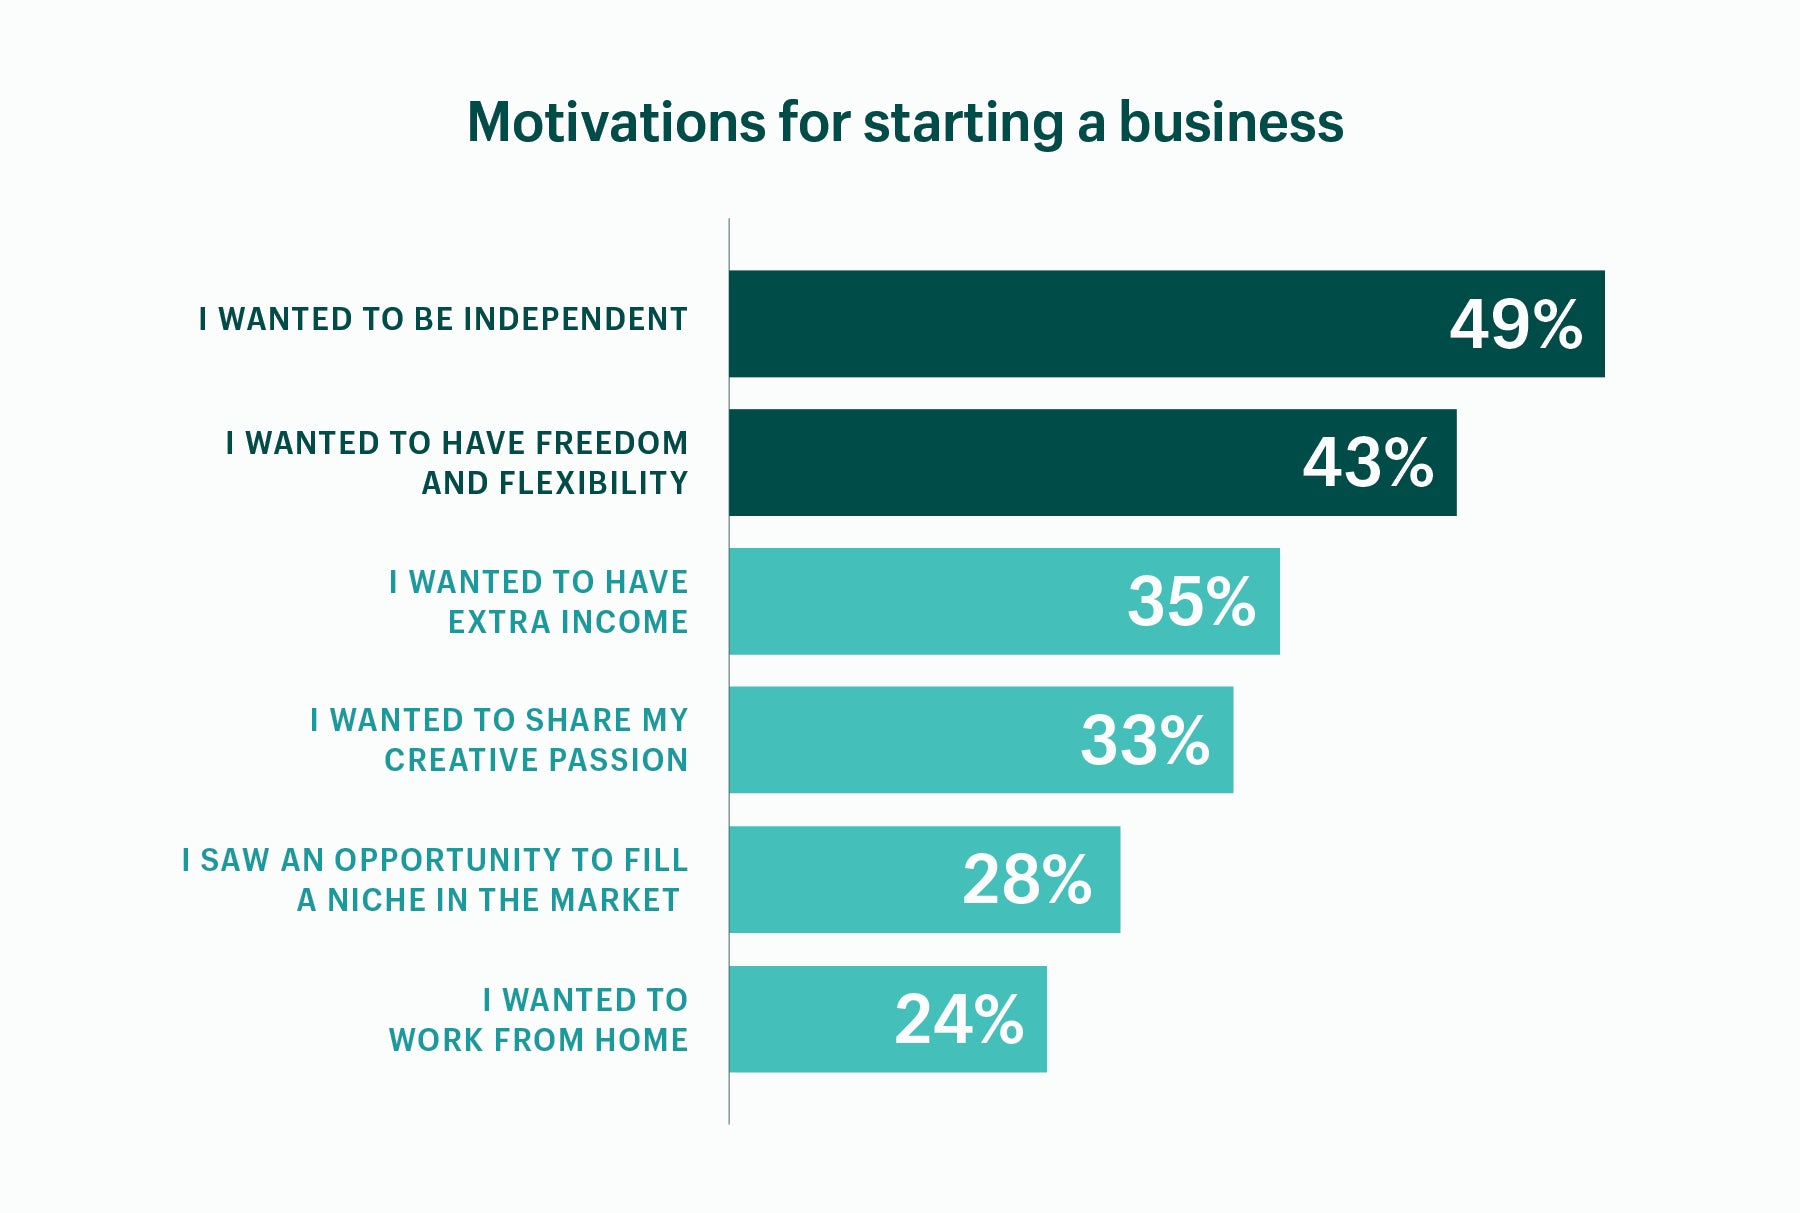 Chart showing that most entrepreneurs start a business to pursue independence